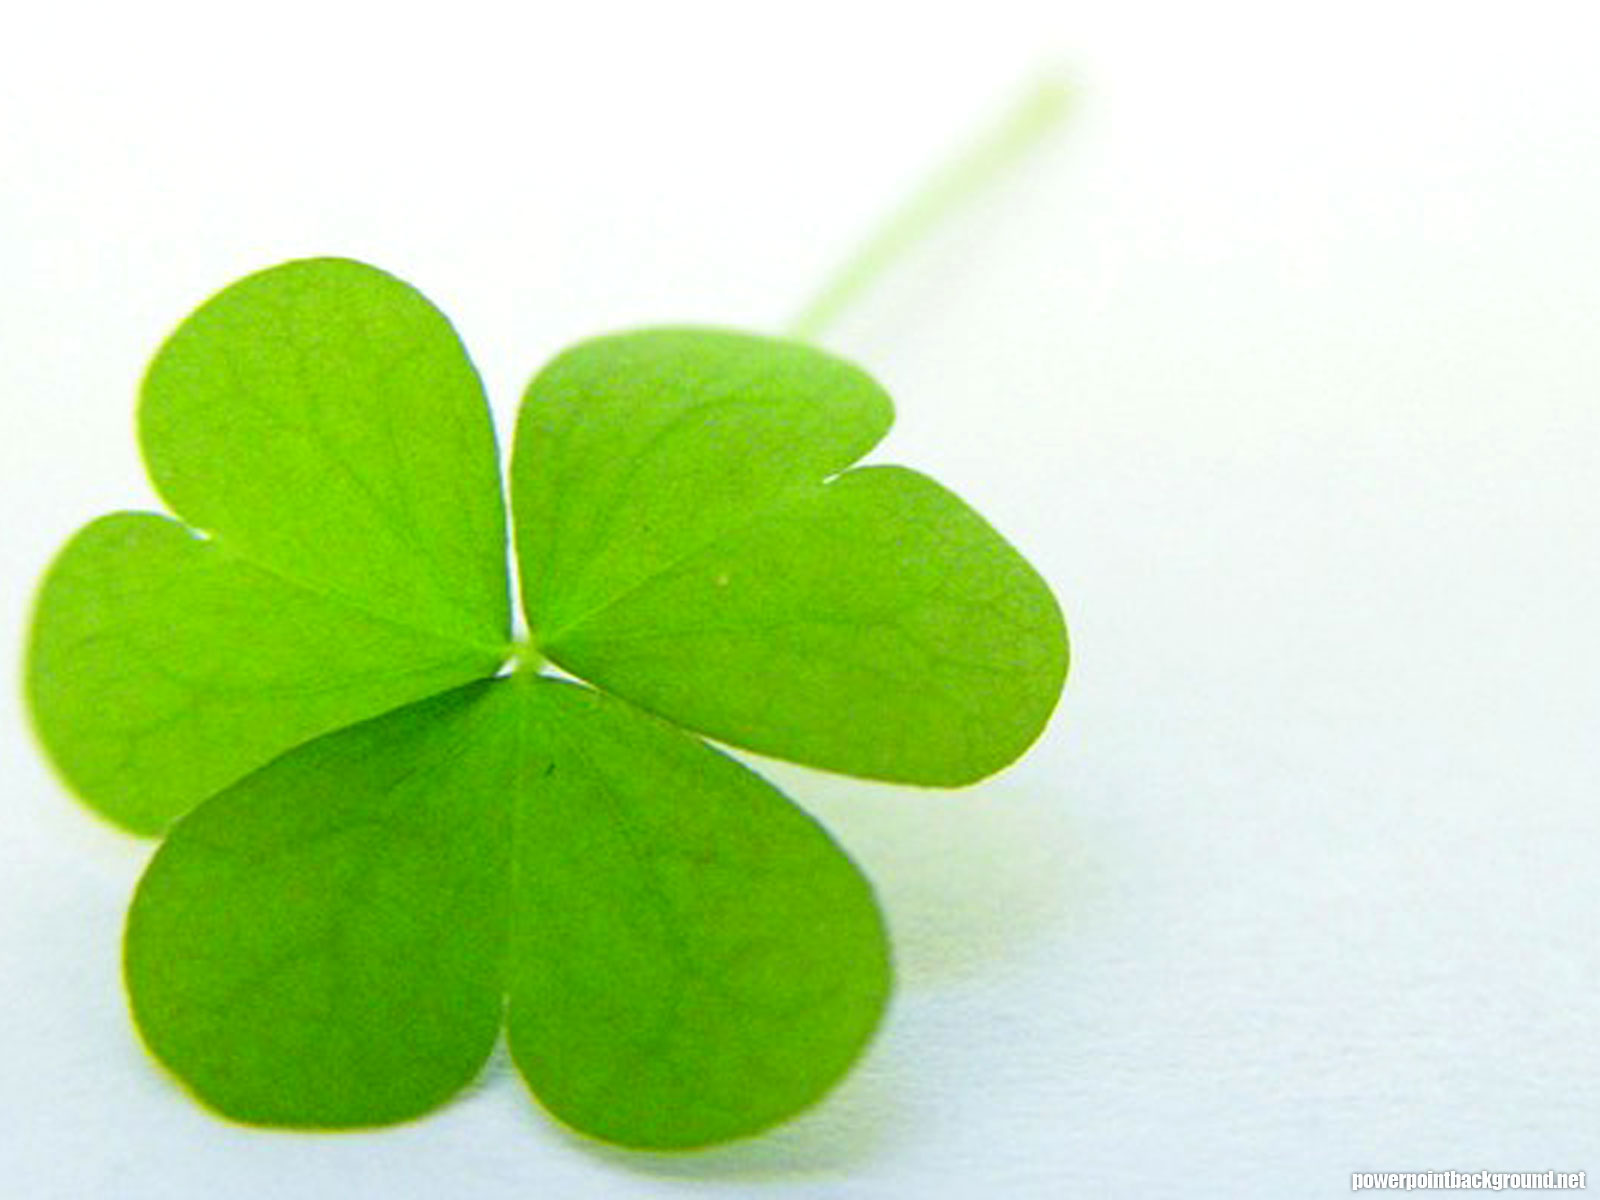 Clover Powerpoint Background